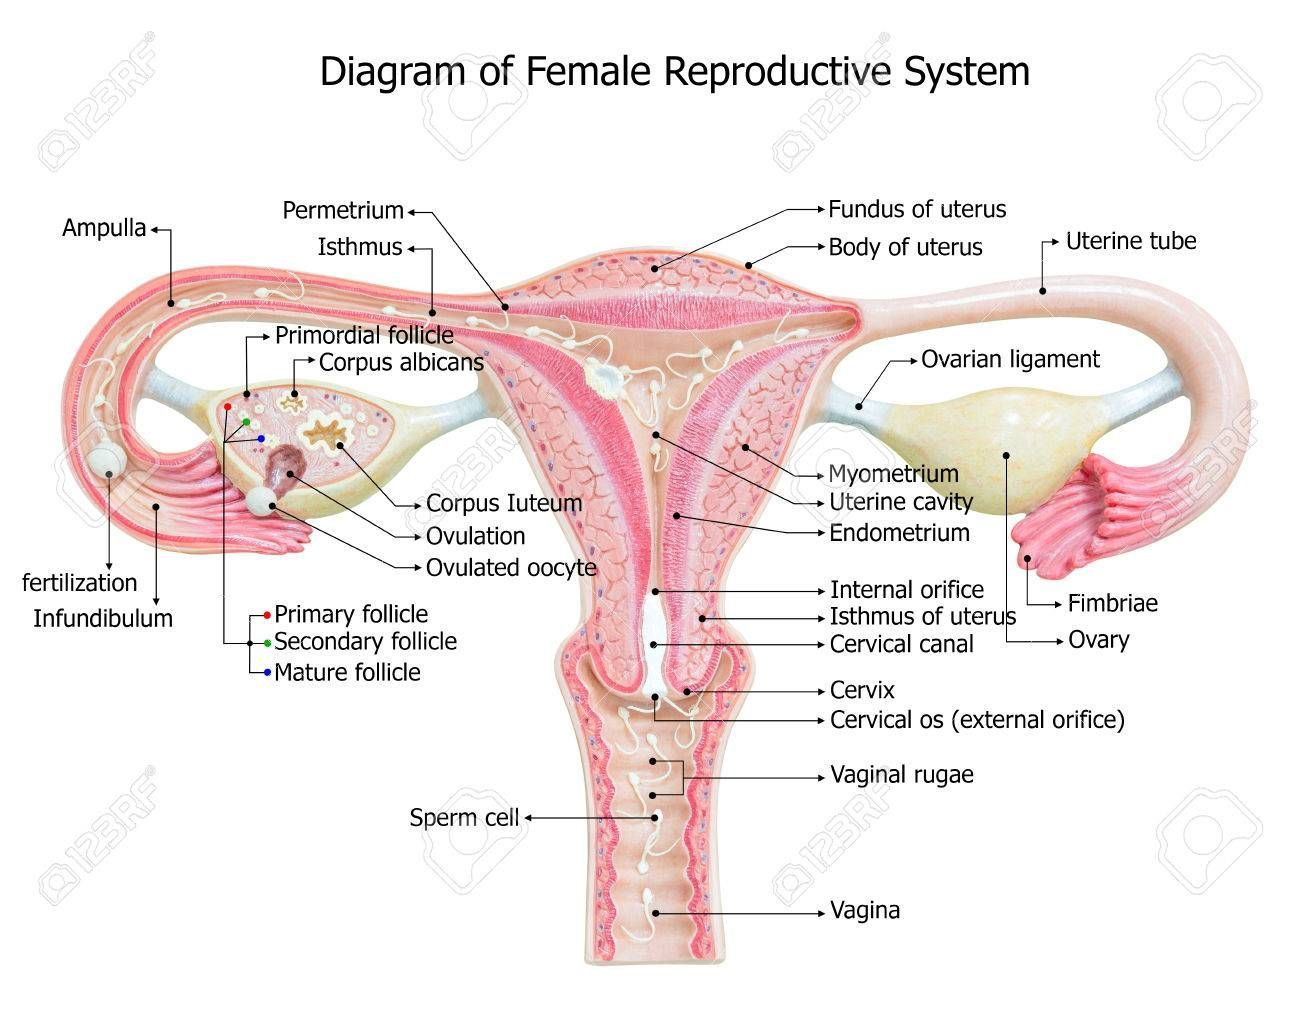 Image Of Female Reproductive System Diagram Image Of Female Reprodu Reproductive System Project Female Reproductive System Female Reproductive System Anatomy